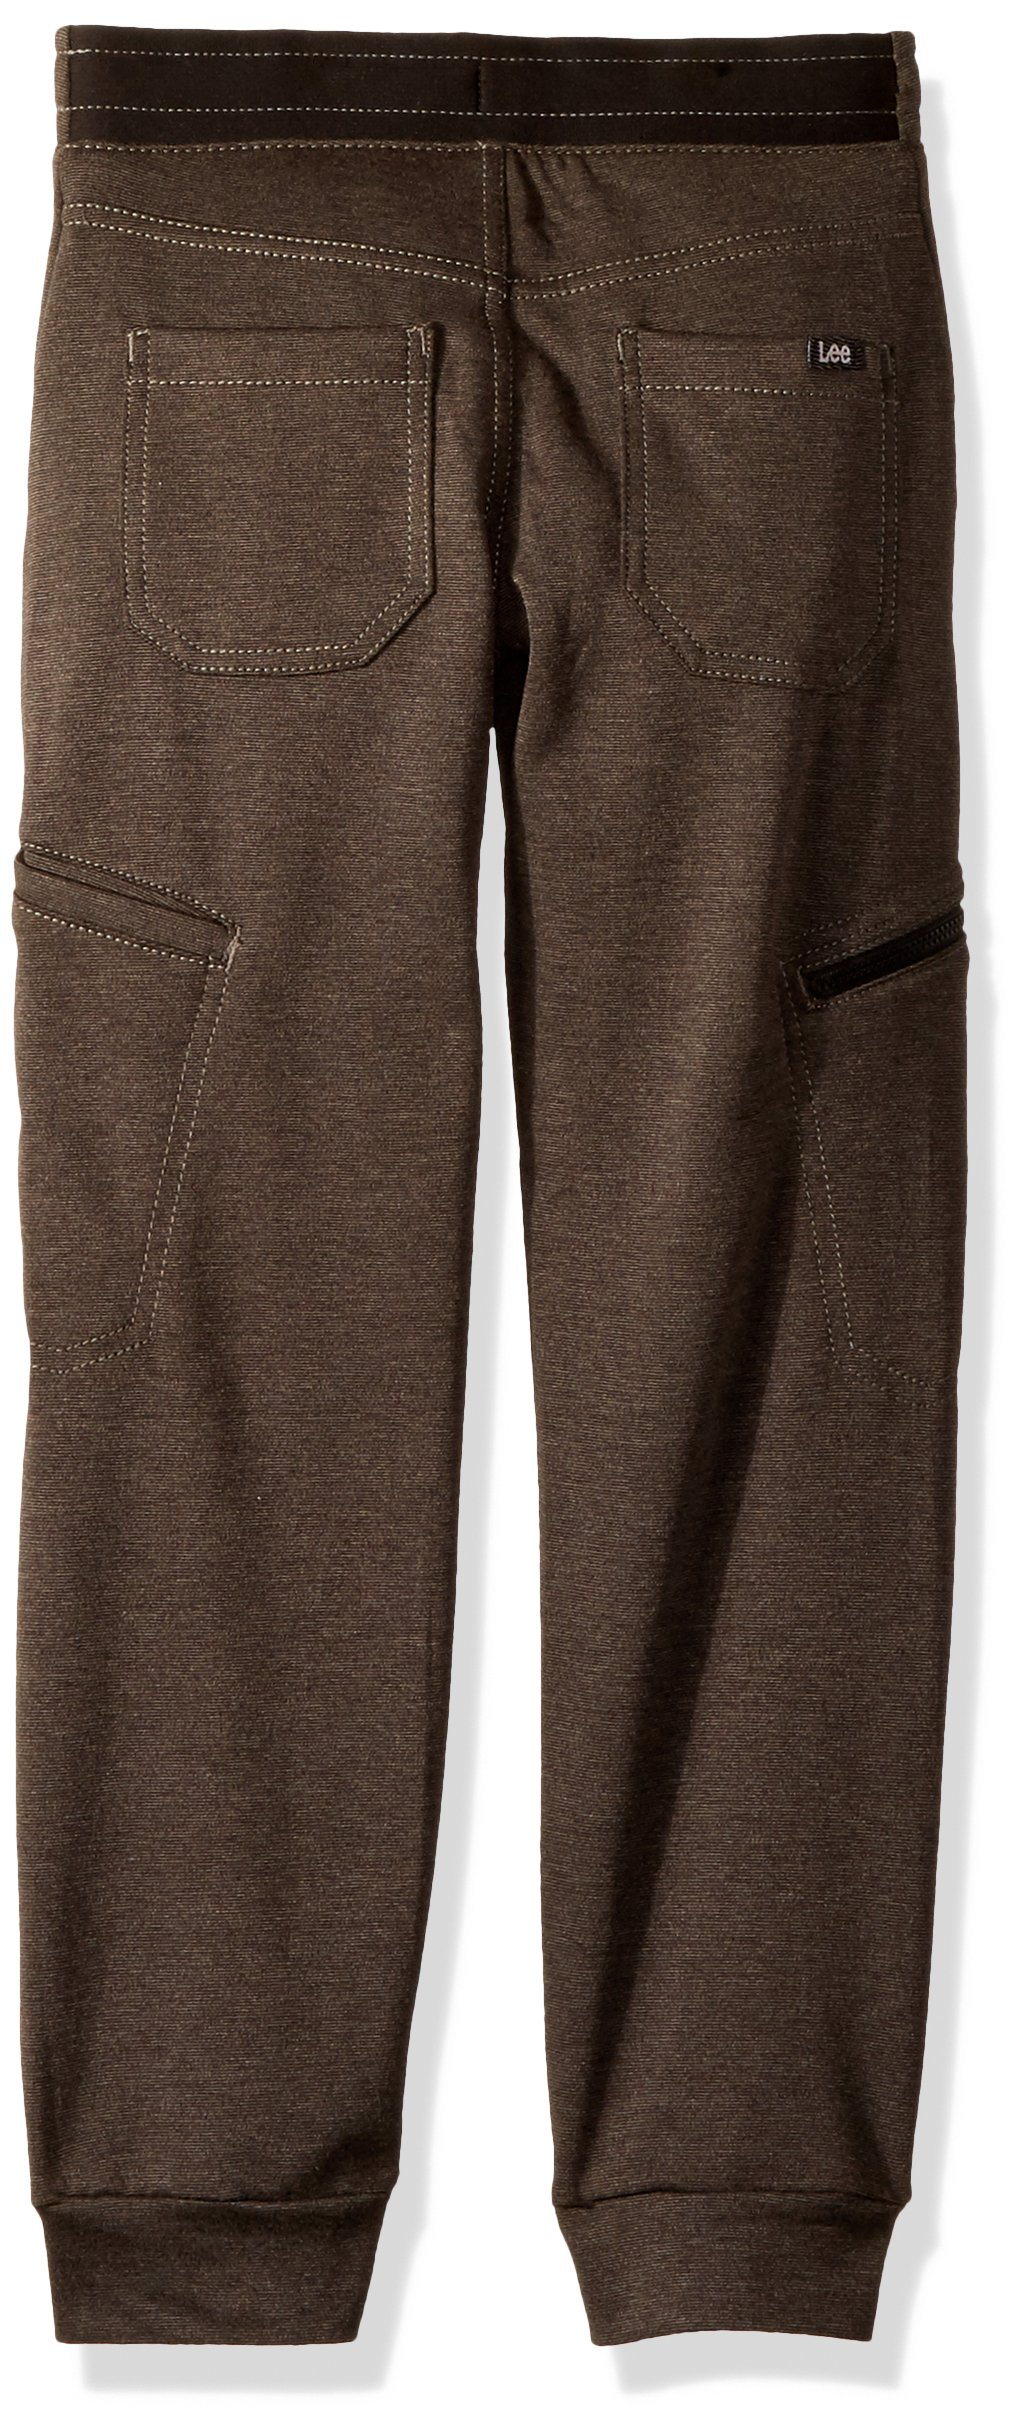 LEE Boys' Little X-Treme Comfort Pull-On Jogger Pant, Black Heather 5 Regular by LEE (Image #2)